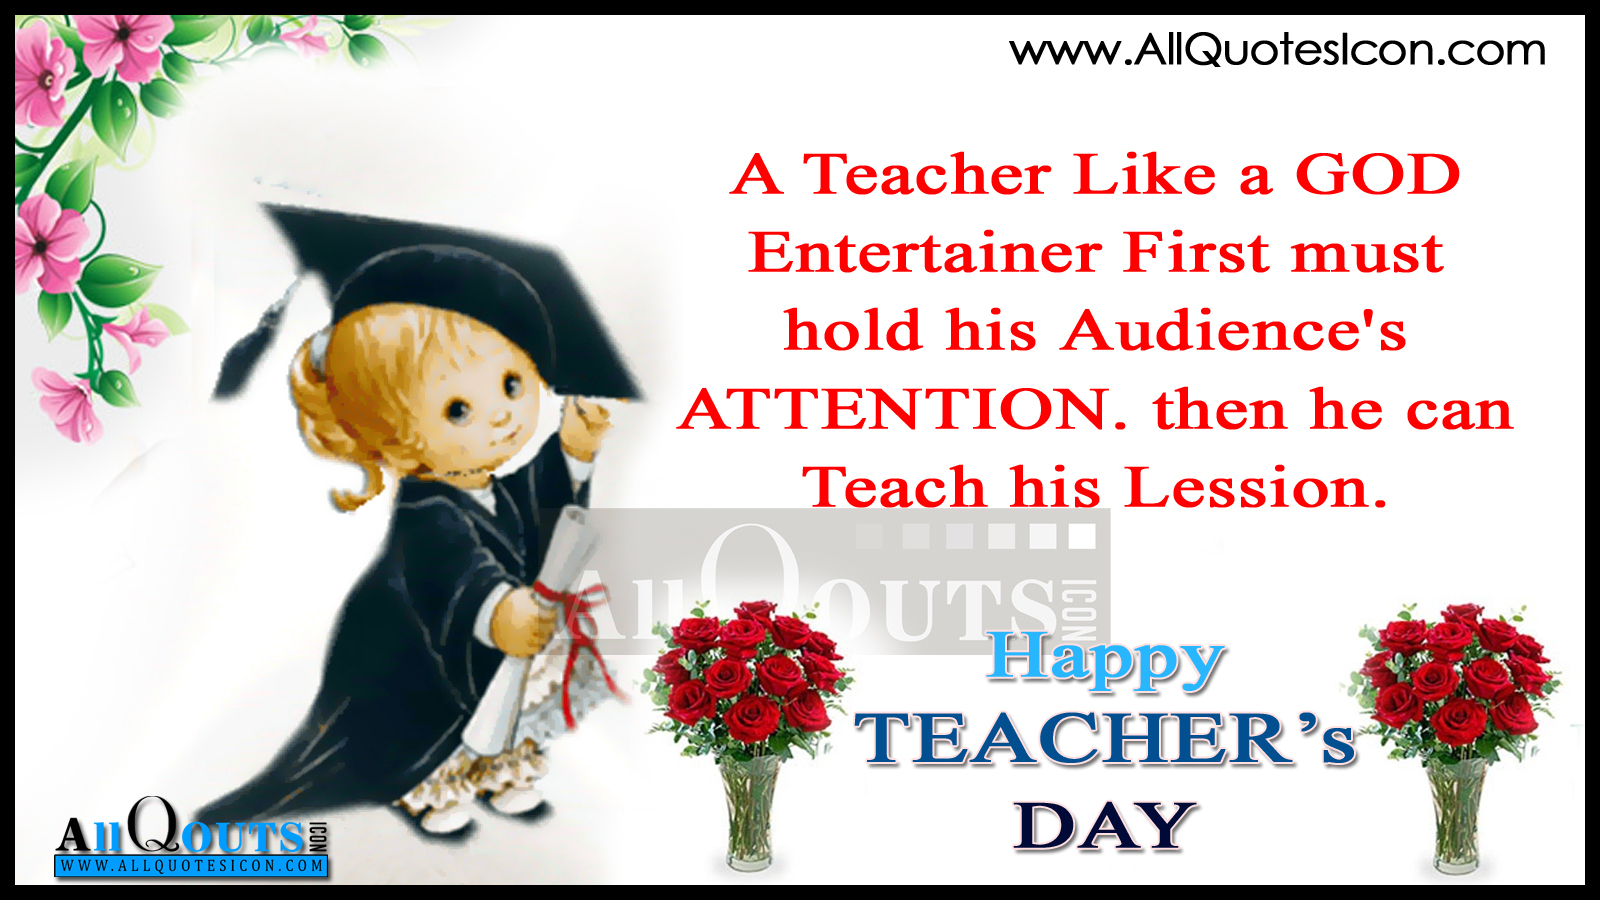 Teachers day speech research paper academic service wtpaperlefg teachers day speech altavistaventures Choice Image